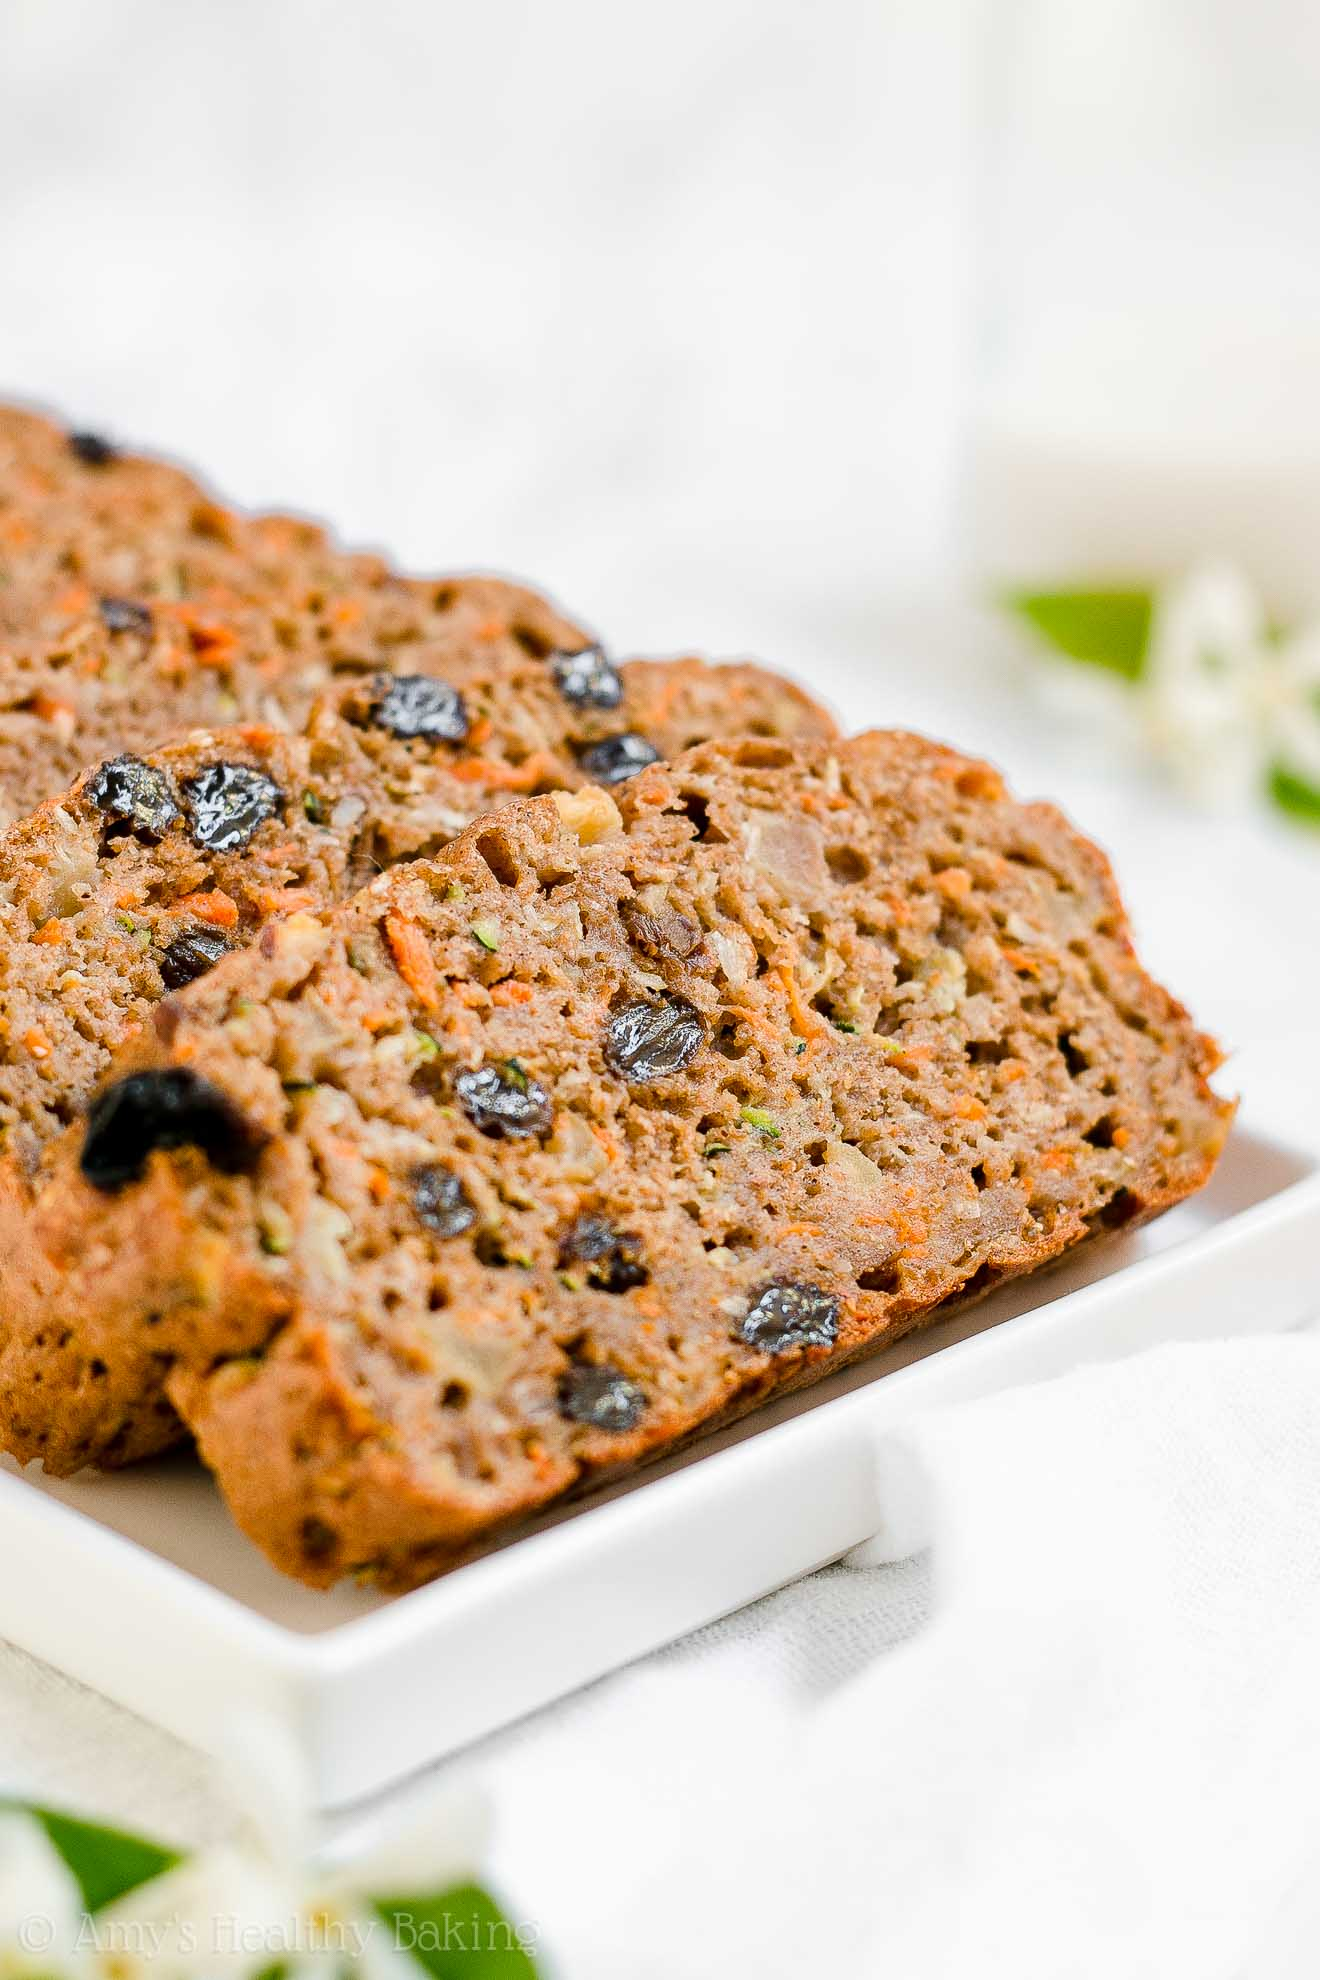 Healthy Whole Wheat Morning Glory Zucchini Bread